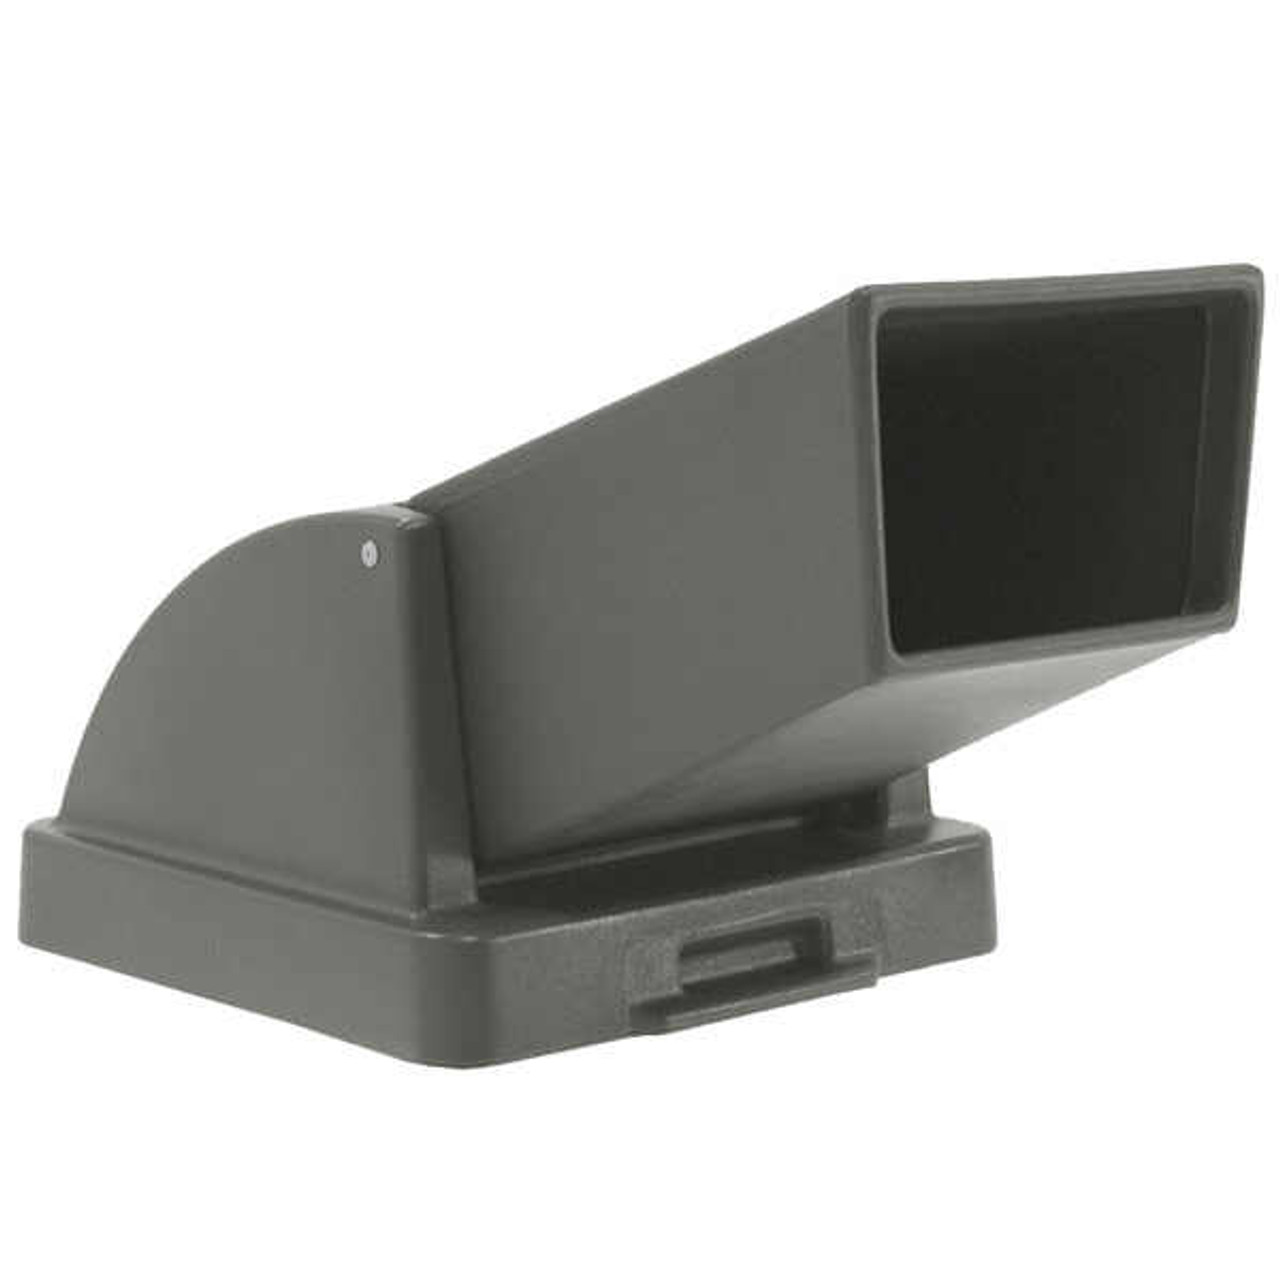 20.5 x 20.5 Drive Up Lid TF1401/TF1416 for Concrete Trash Cans Square (GRAY)